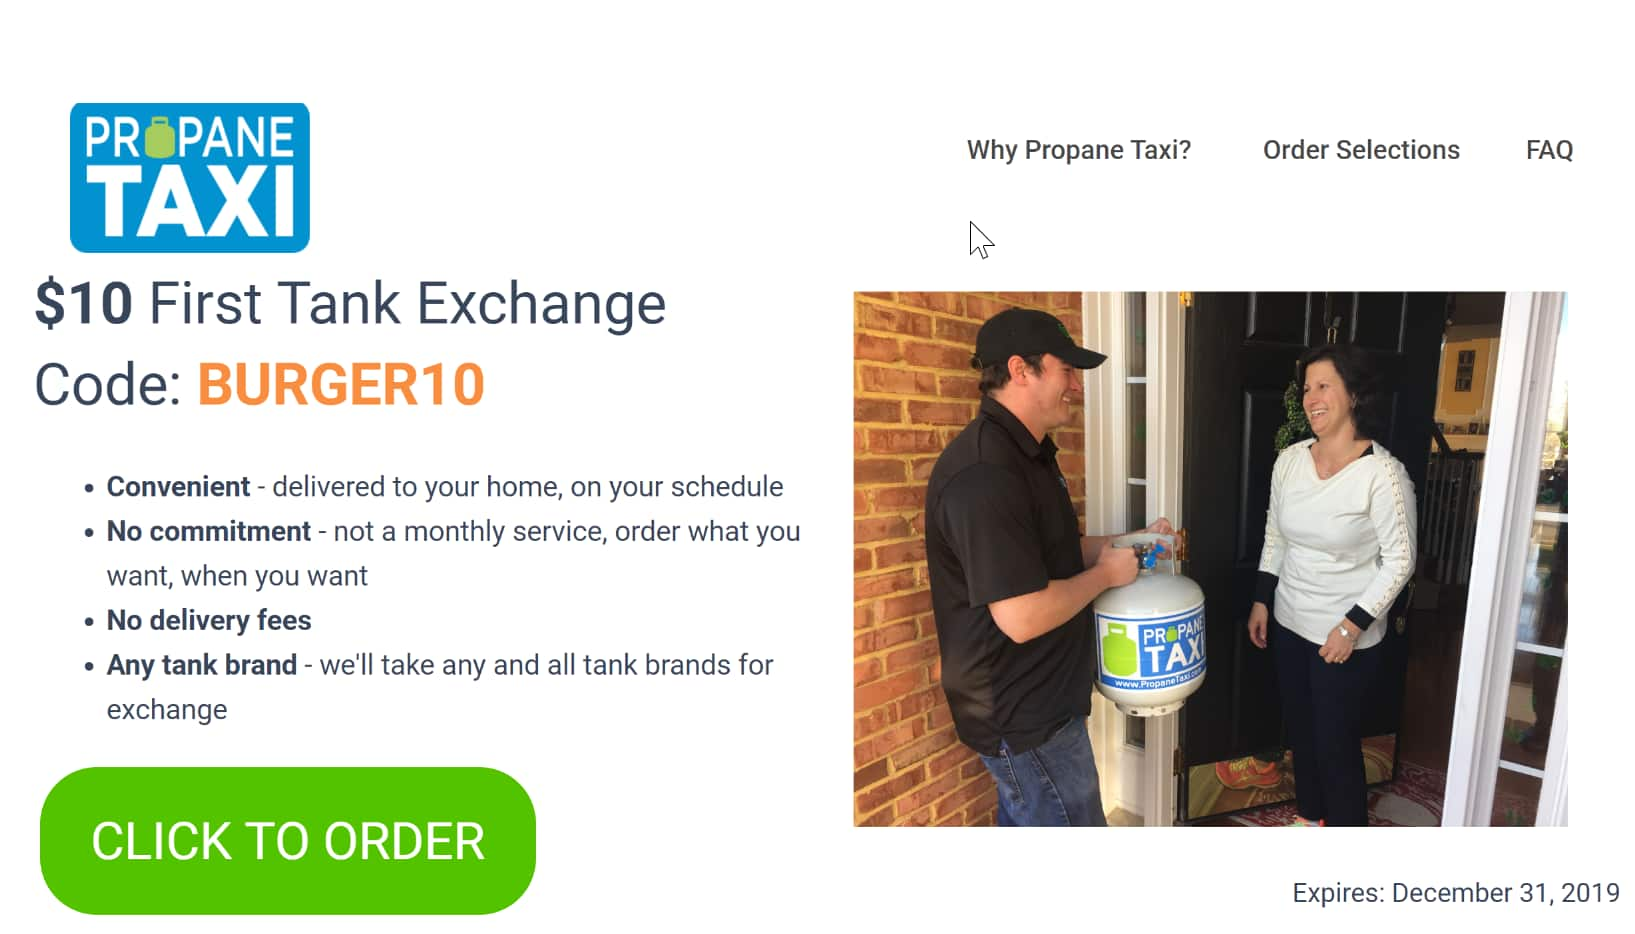 Propane tank exchange Delivery! - Propane Taxi $10